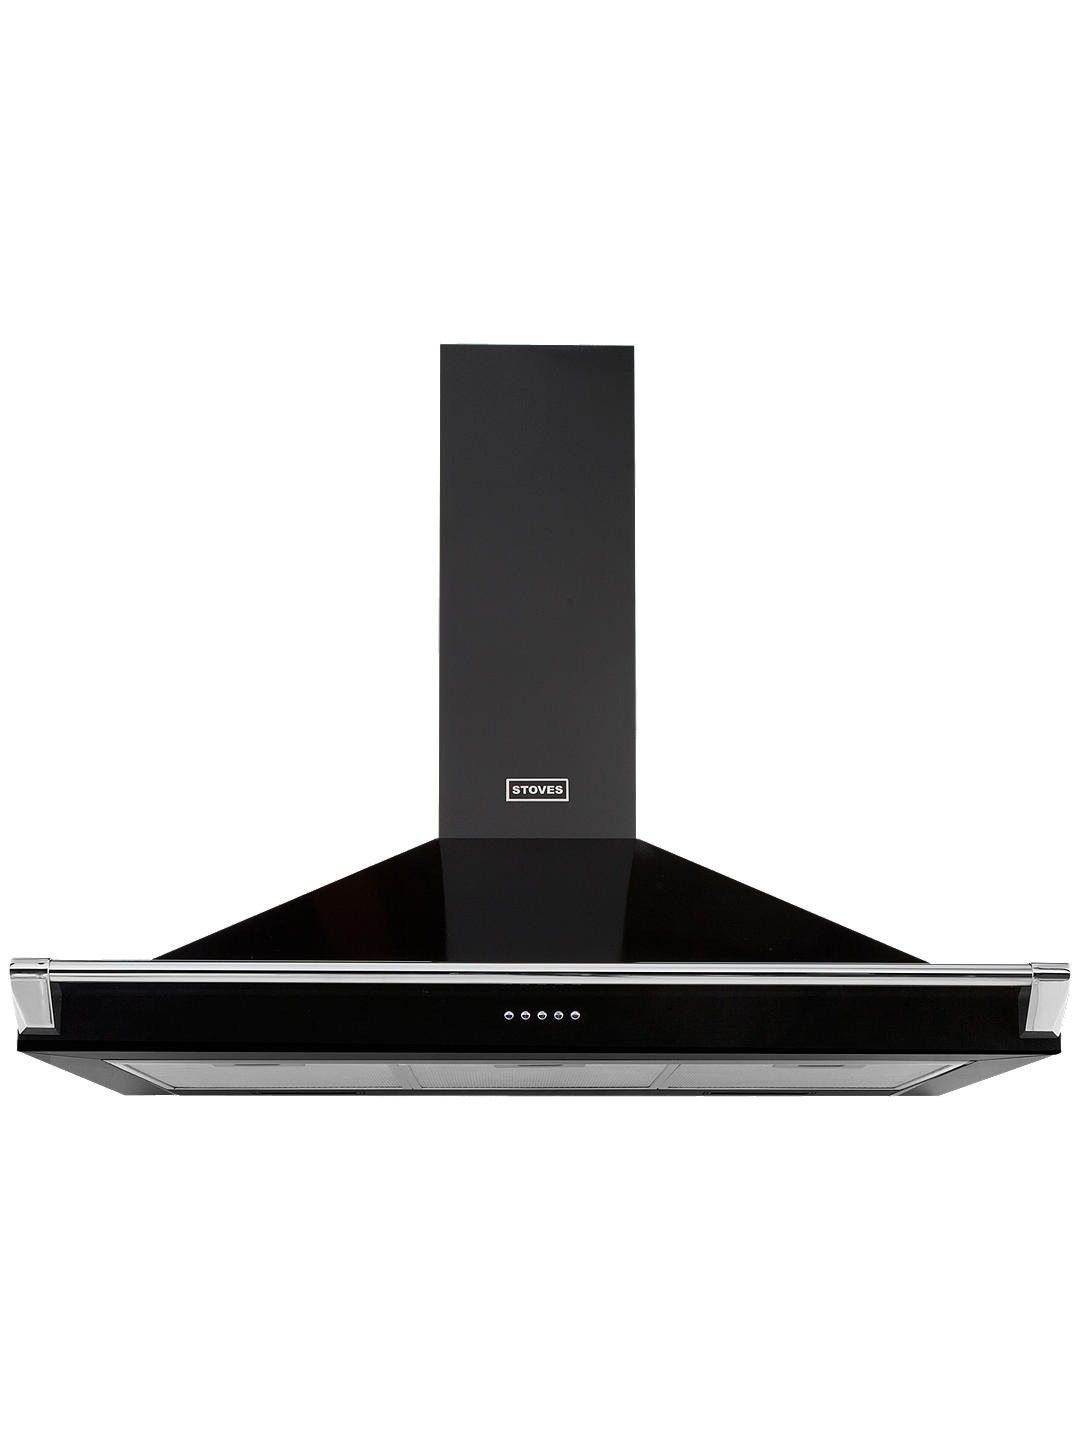 Buy Stoves S1100 Richmond Cooker Hood, 110cm Wide, Black Online at johnlewis.com